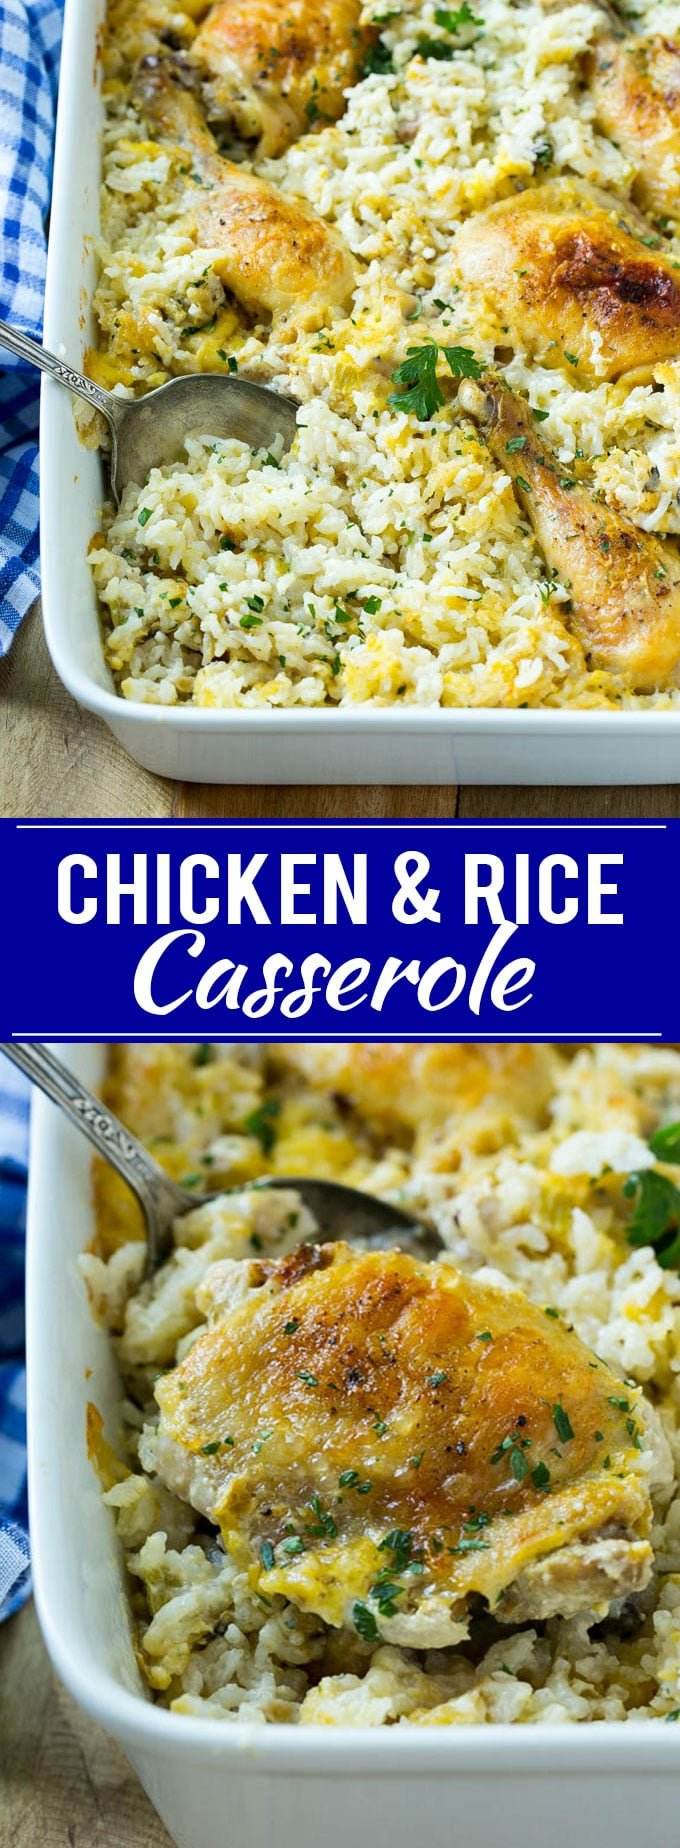 Chicken and Rice Casserole Recipe | Chicken and Rice Bake | Cream of Mushroom Chicken Casserole | Chicken Casserole Recipe #chicken #casserole #rice #dinner #onepot #dinneratthezoo